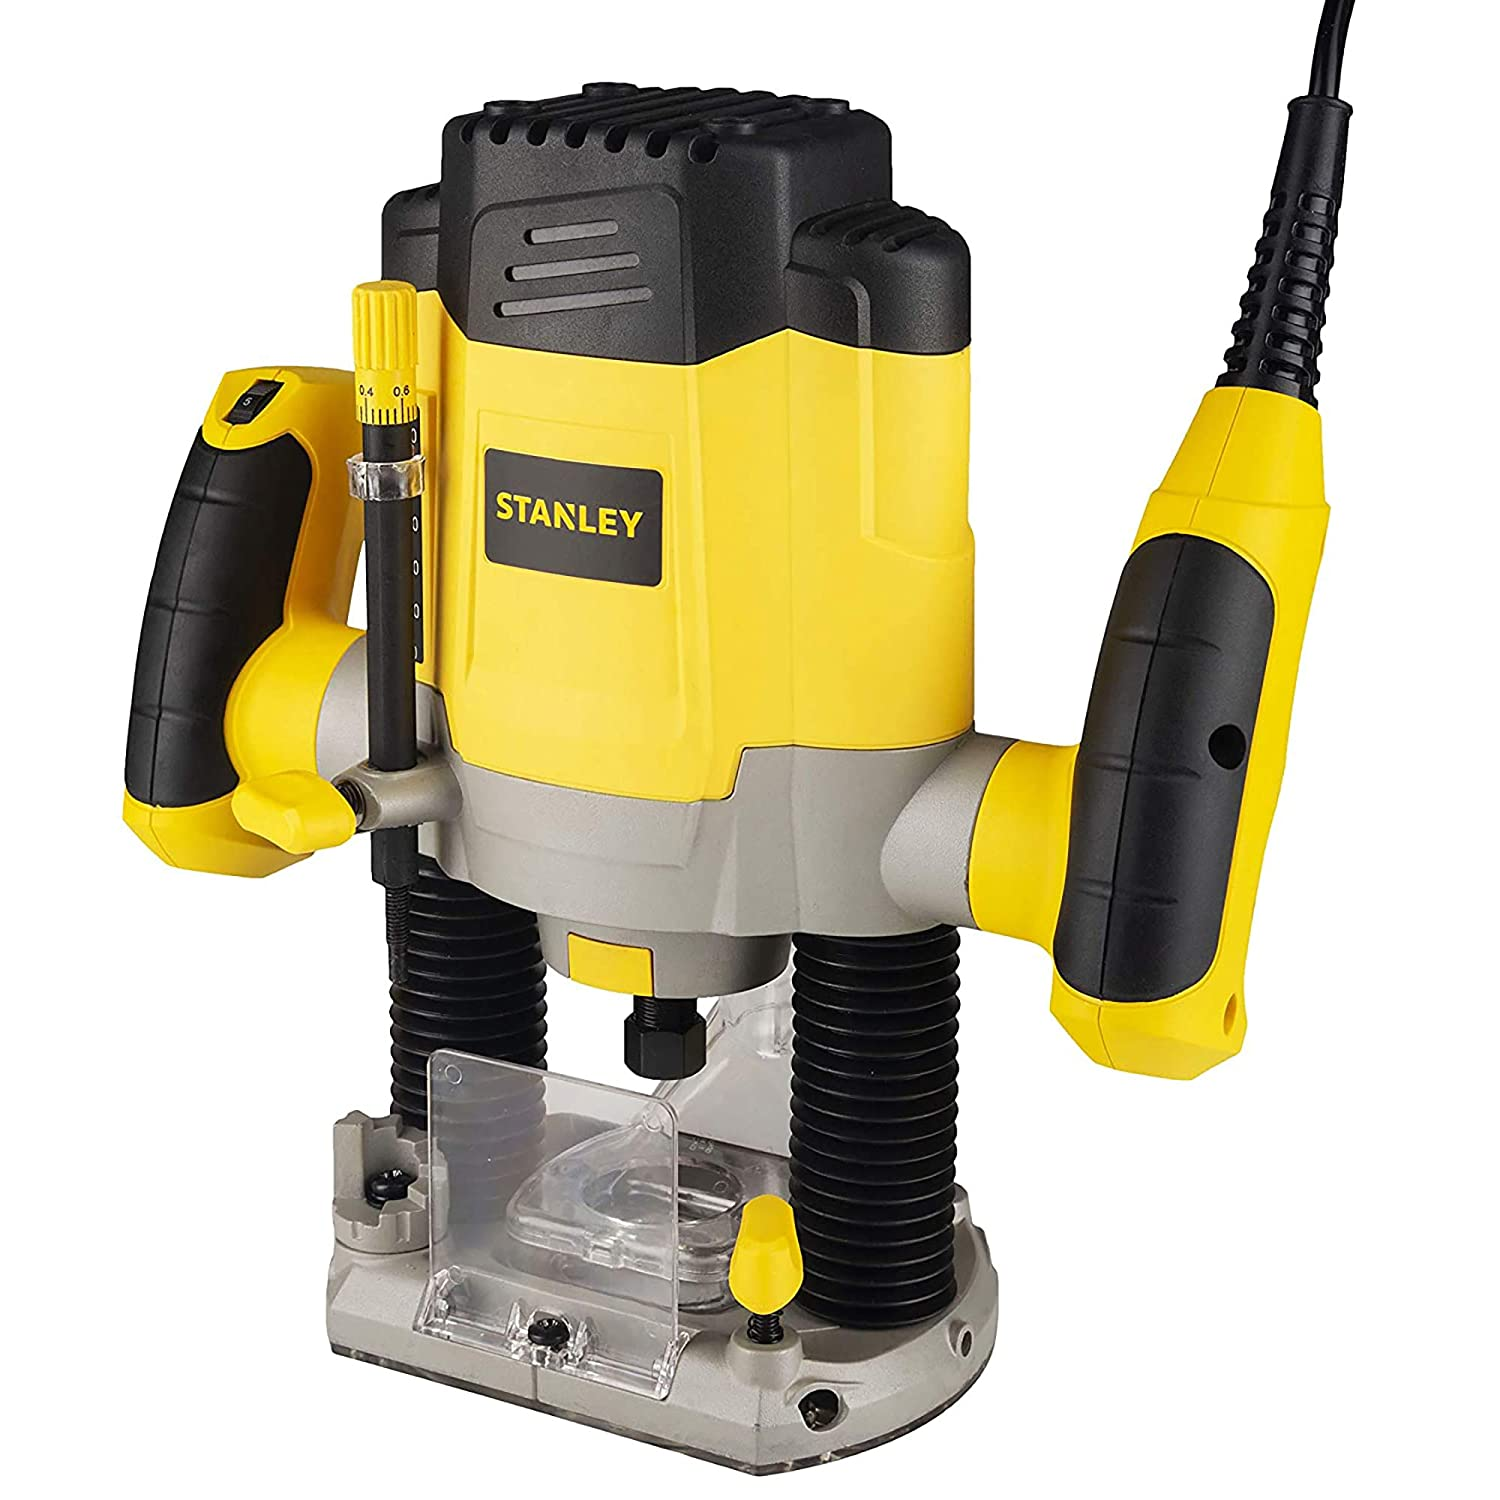 1200W Variable Speed Plunge Router